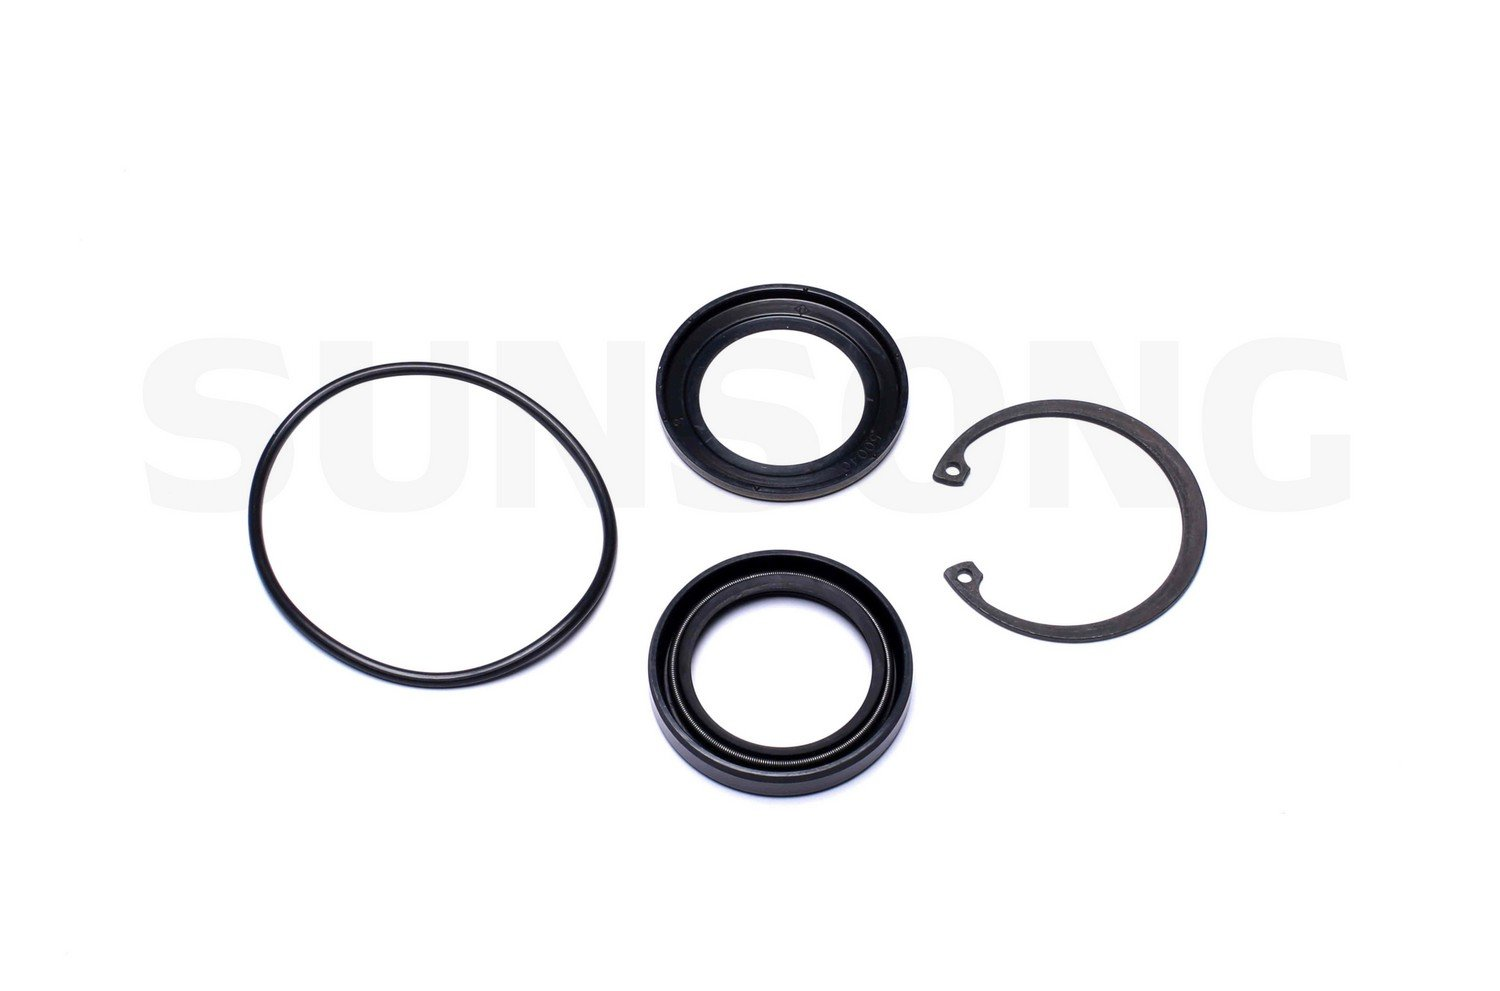 Sunsong 8401428 Steering Gear Pitman Shaft Seal Kit